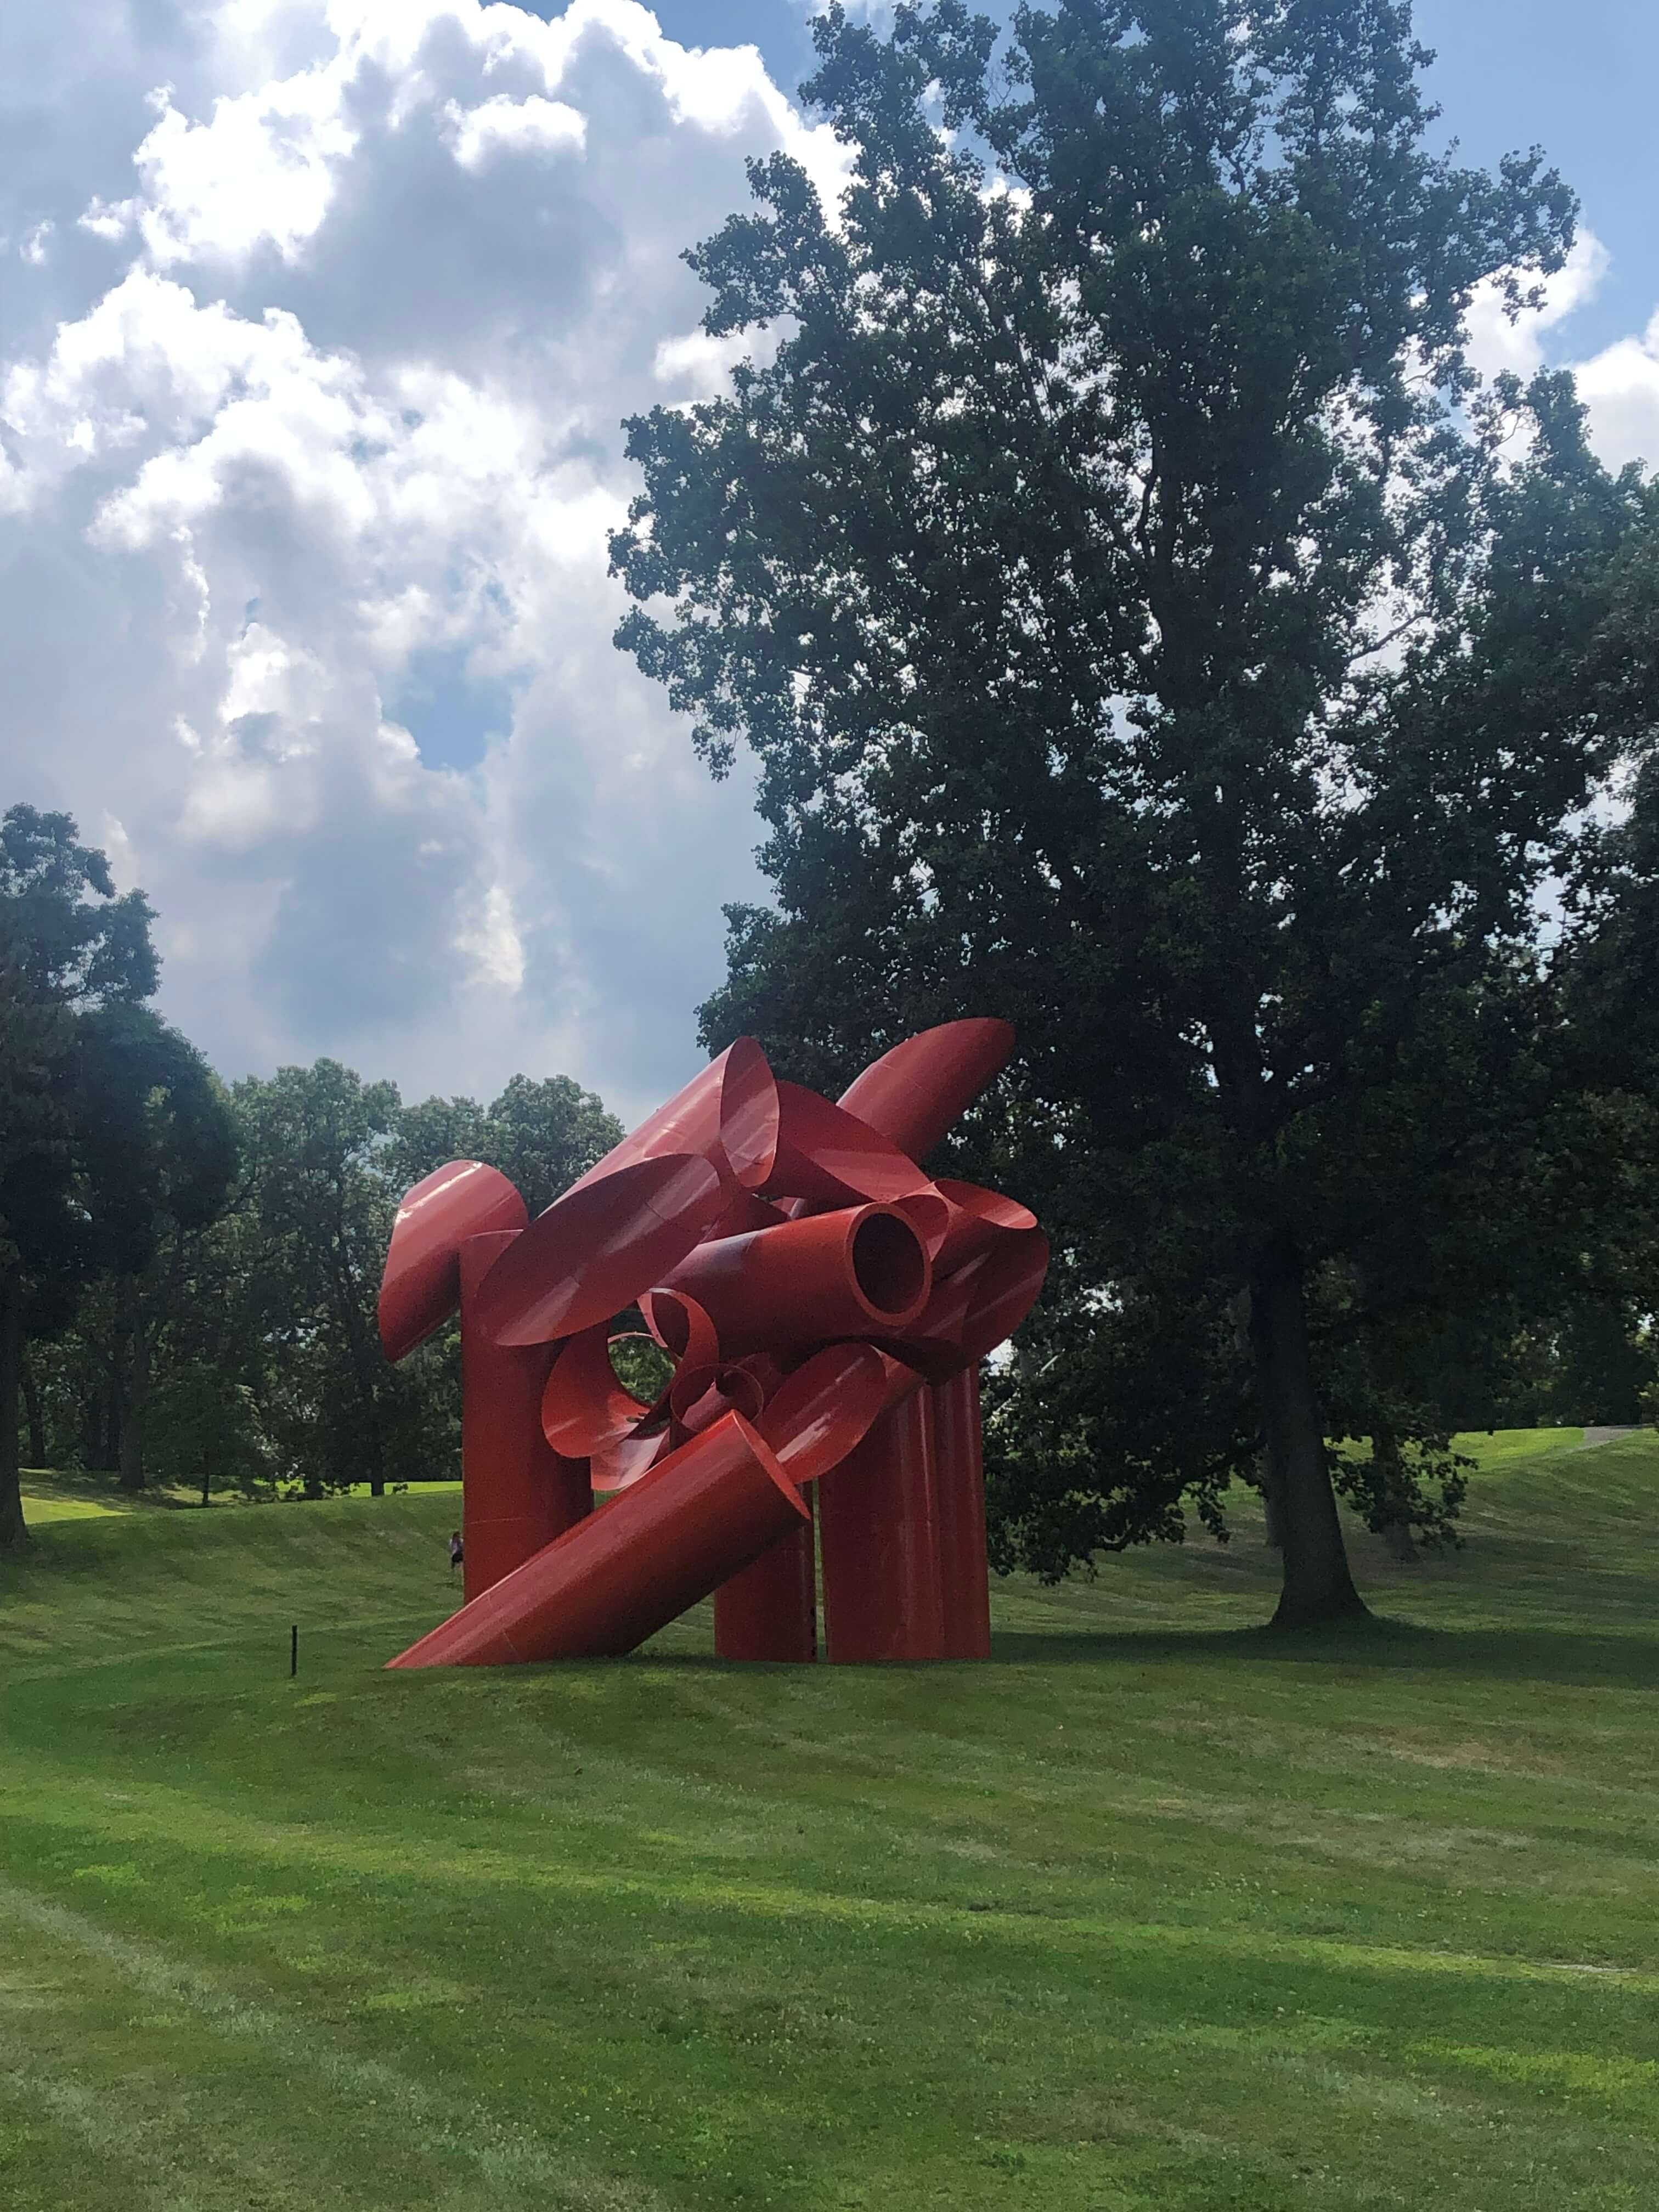 Iliad by Alexander Liberman at the Storm King Arts Center